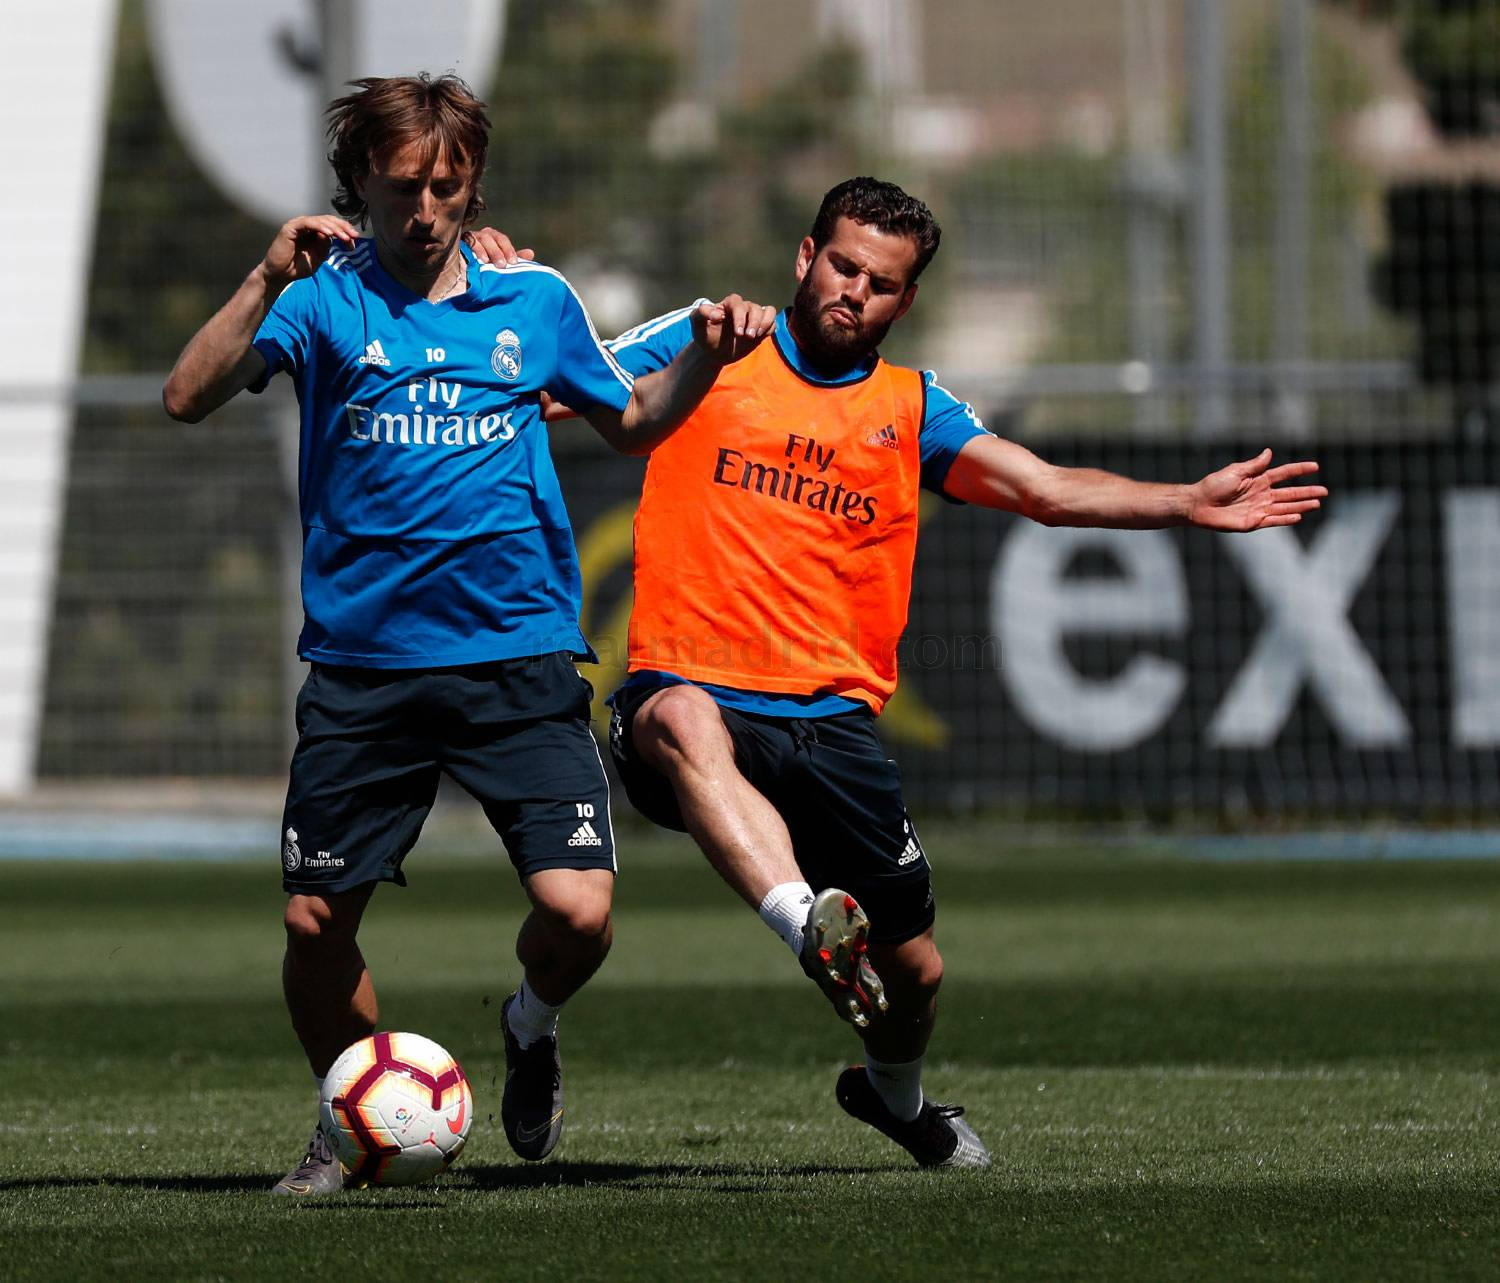 Real Madrid - Entrenamiento del Real Madrid - 11-05-2019